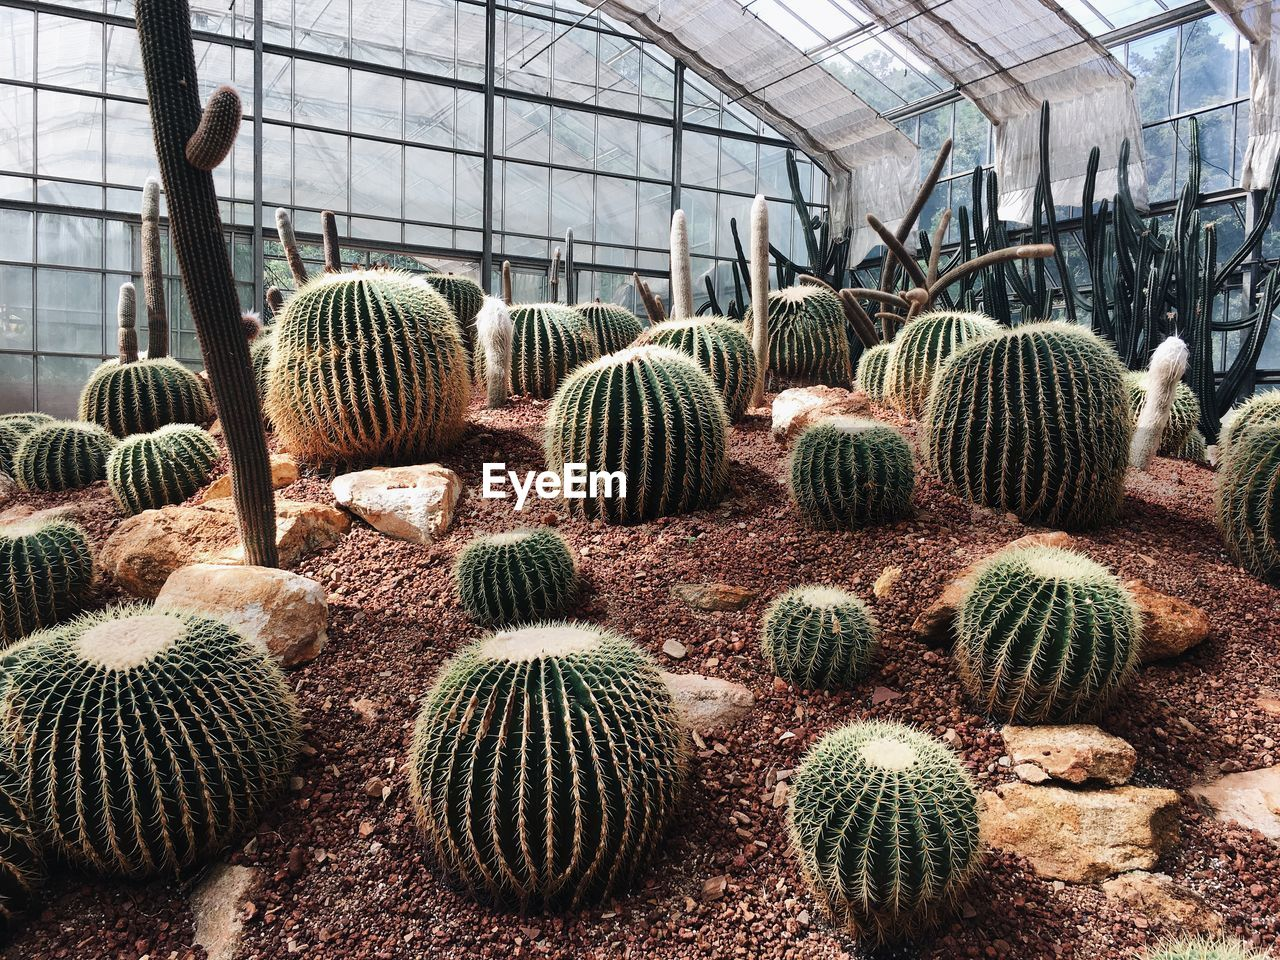 greenhouse, barrel cactus, growth, succulent plant, cactus, plant, day, no people, indoors, nature, plant nursery, botany, green color, agriculture, beauty in nature, thorn, close-up, sharp, abundance